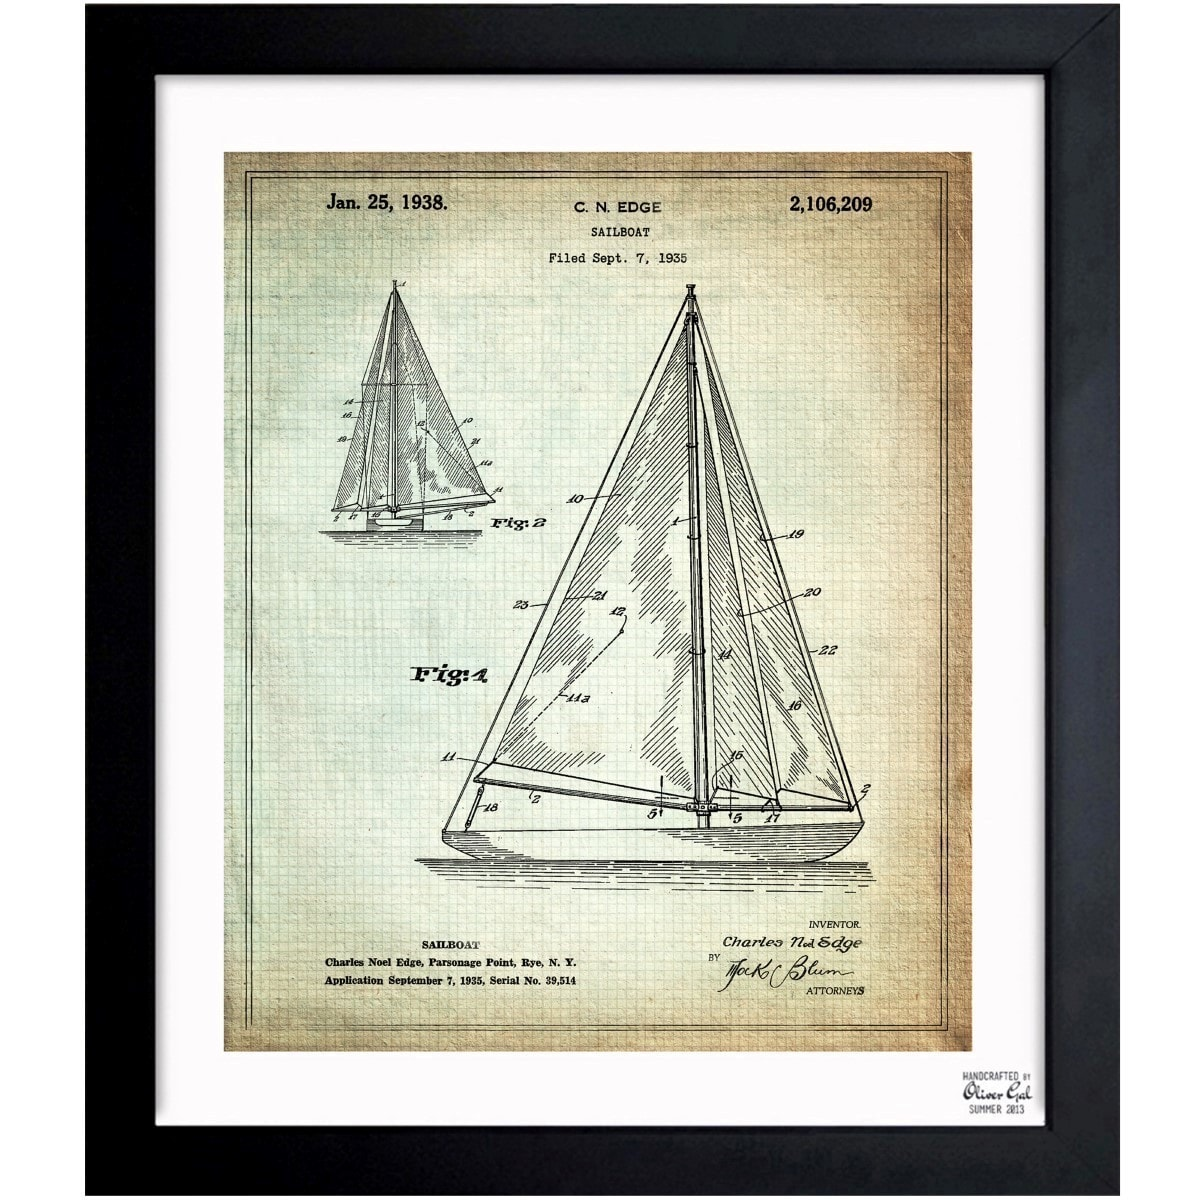 Shop oliver gal sailboat 1938 framed blueprint art on sale shop oliver gal sailboat 1938 framed blueprint art on sale free shipping today overstock 11533388 malvernweather Gallery